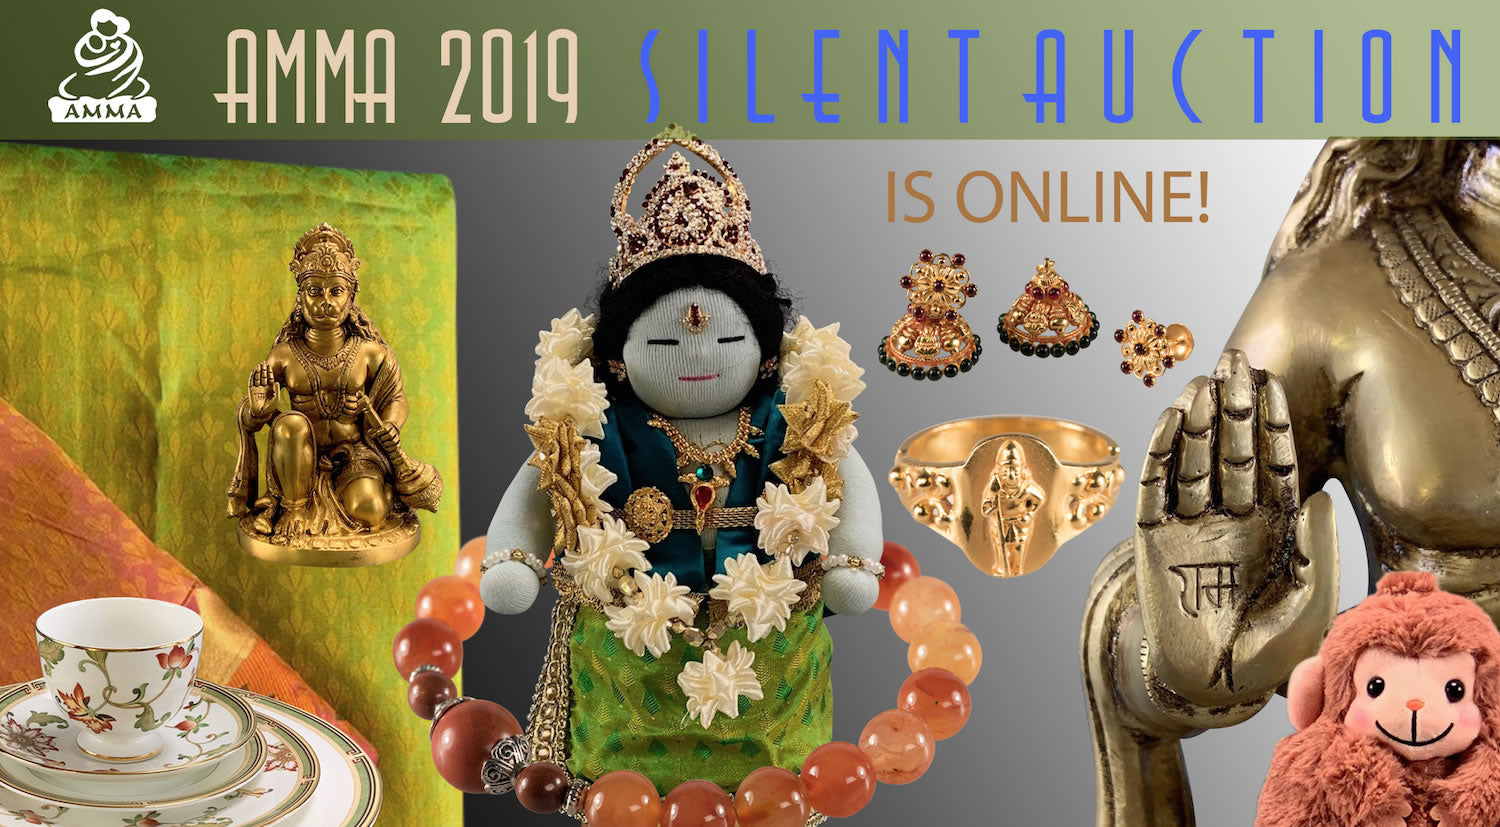 Amma 2019 Silent Auction